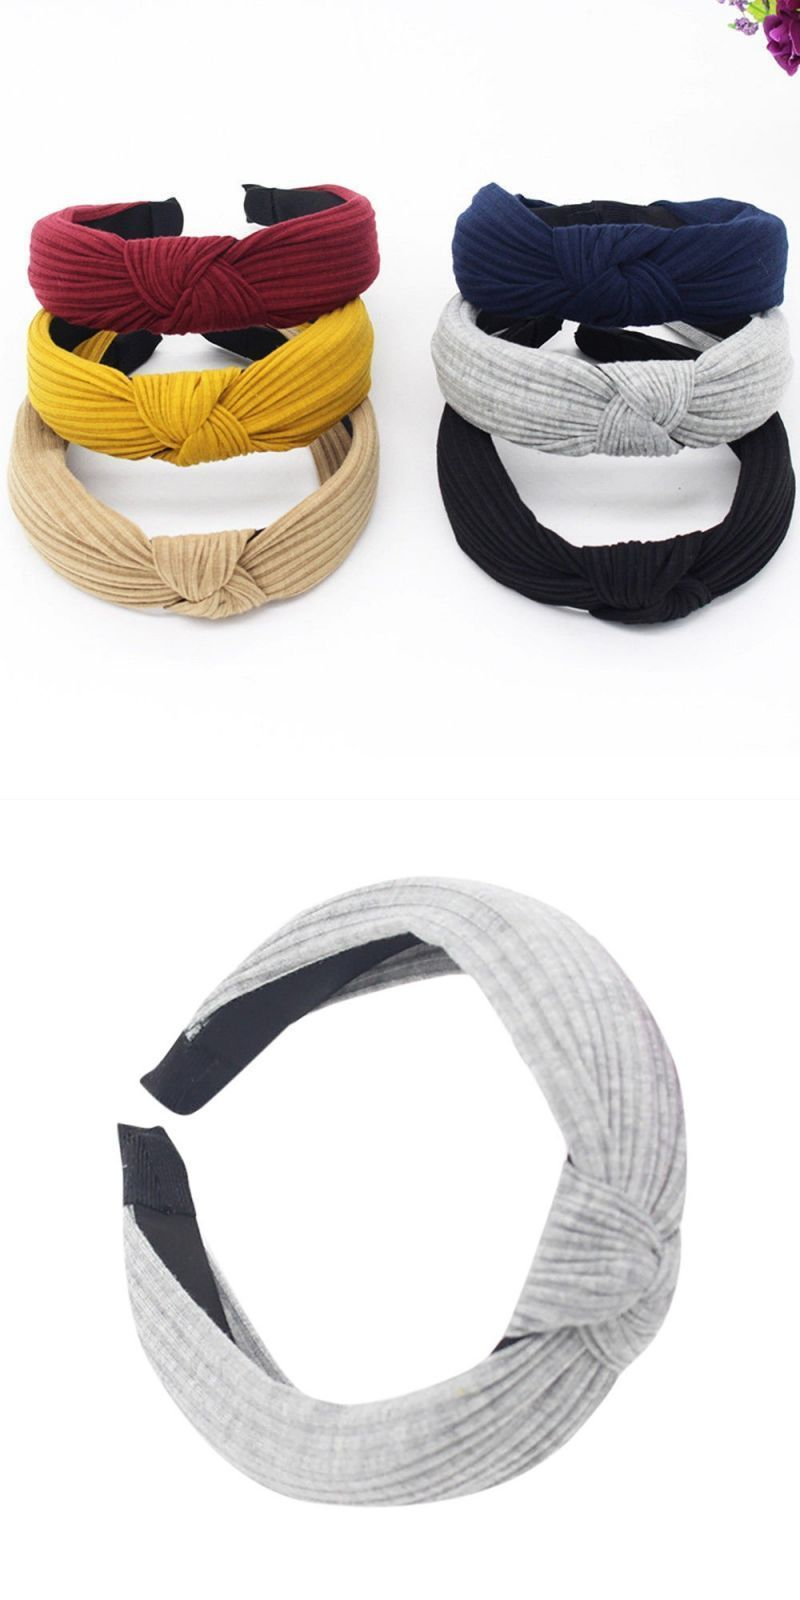 e88ba73928e22 Korean style womens headband twist hairband bow knot cross tie velvet  headwrap hair band hoop gift headwear 0 010  women  polyester  adult   fashion ...